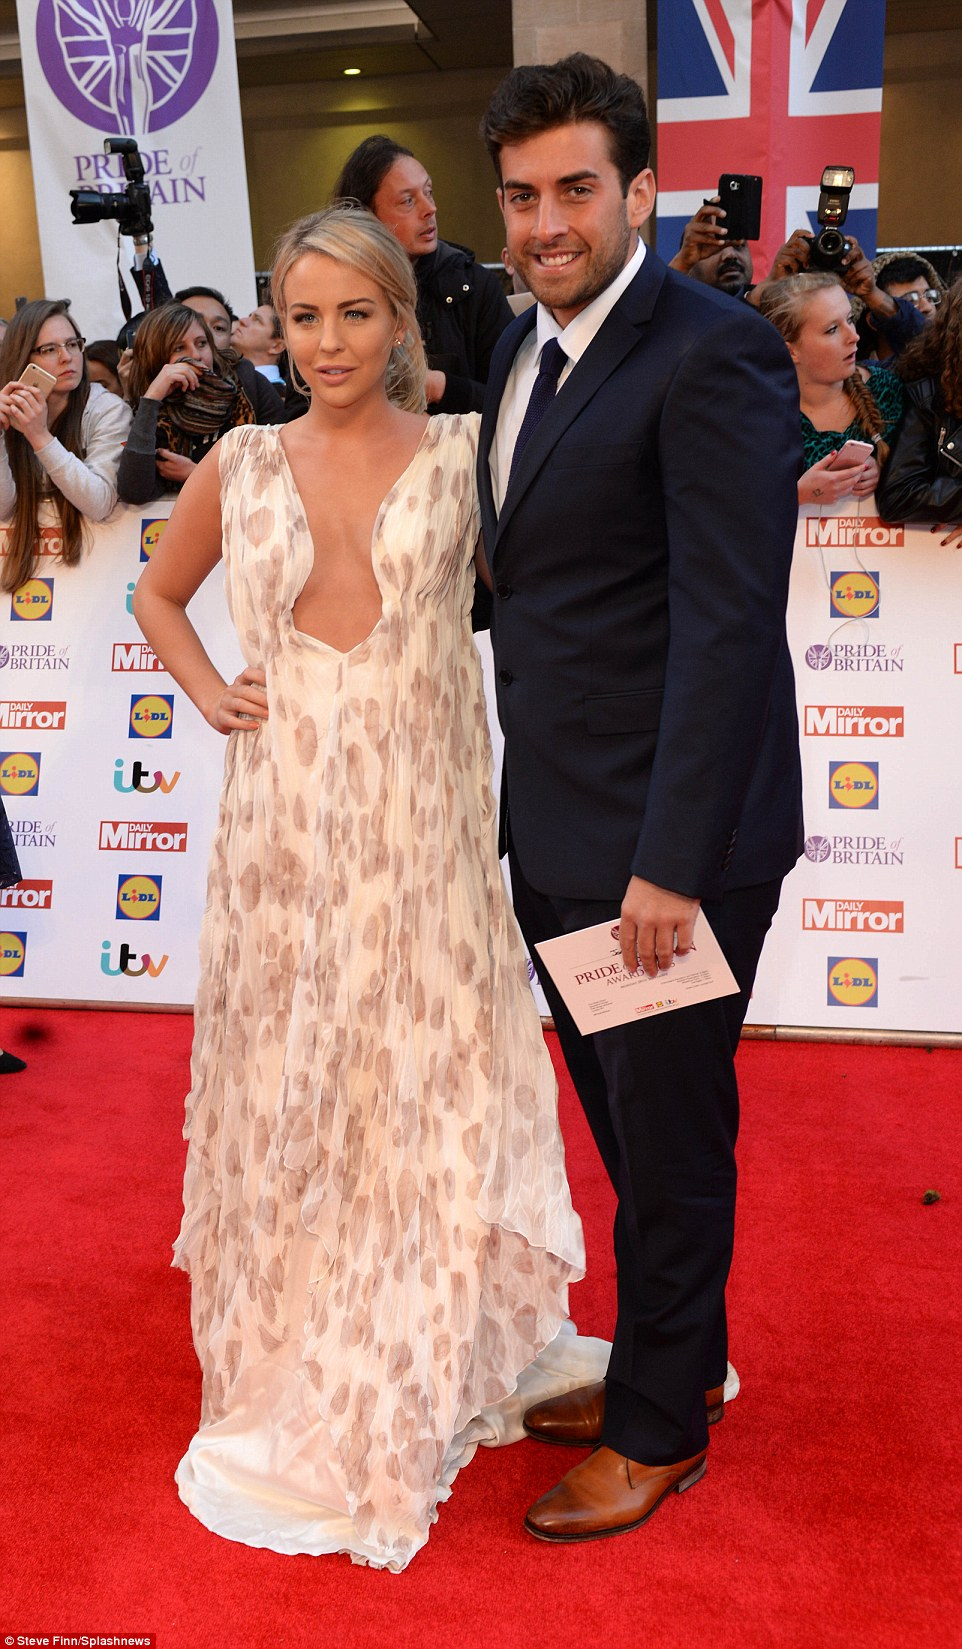 Happy couple: James 'Arg' Argent was joining his gorgeous girlfriend on the red carpet at the awards